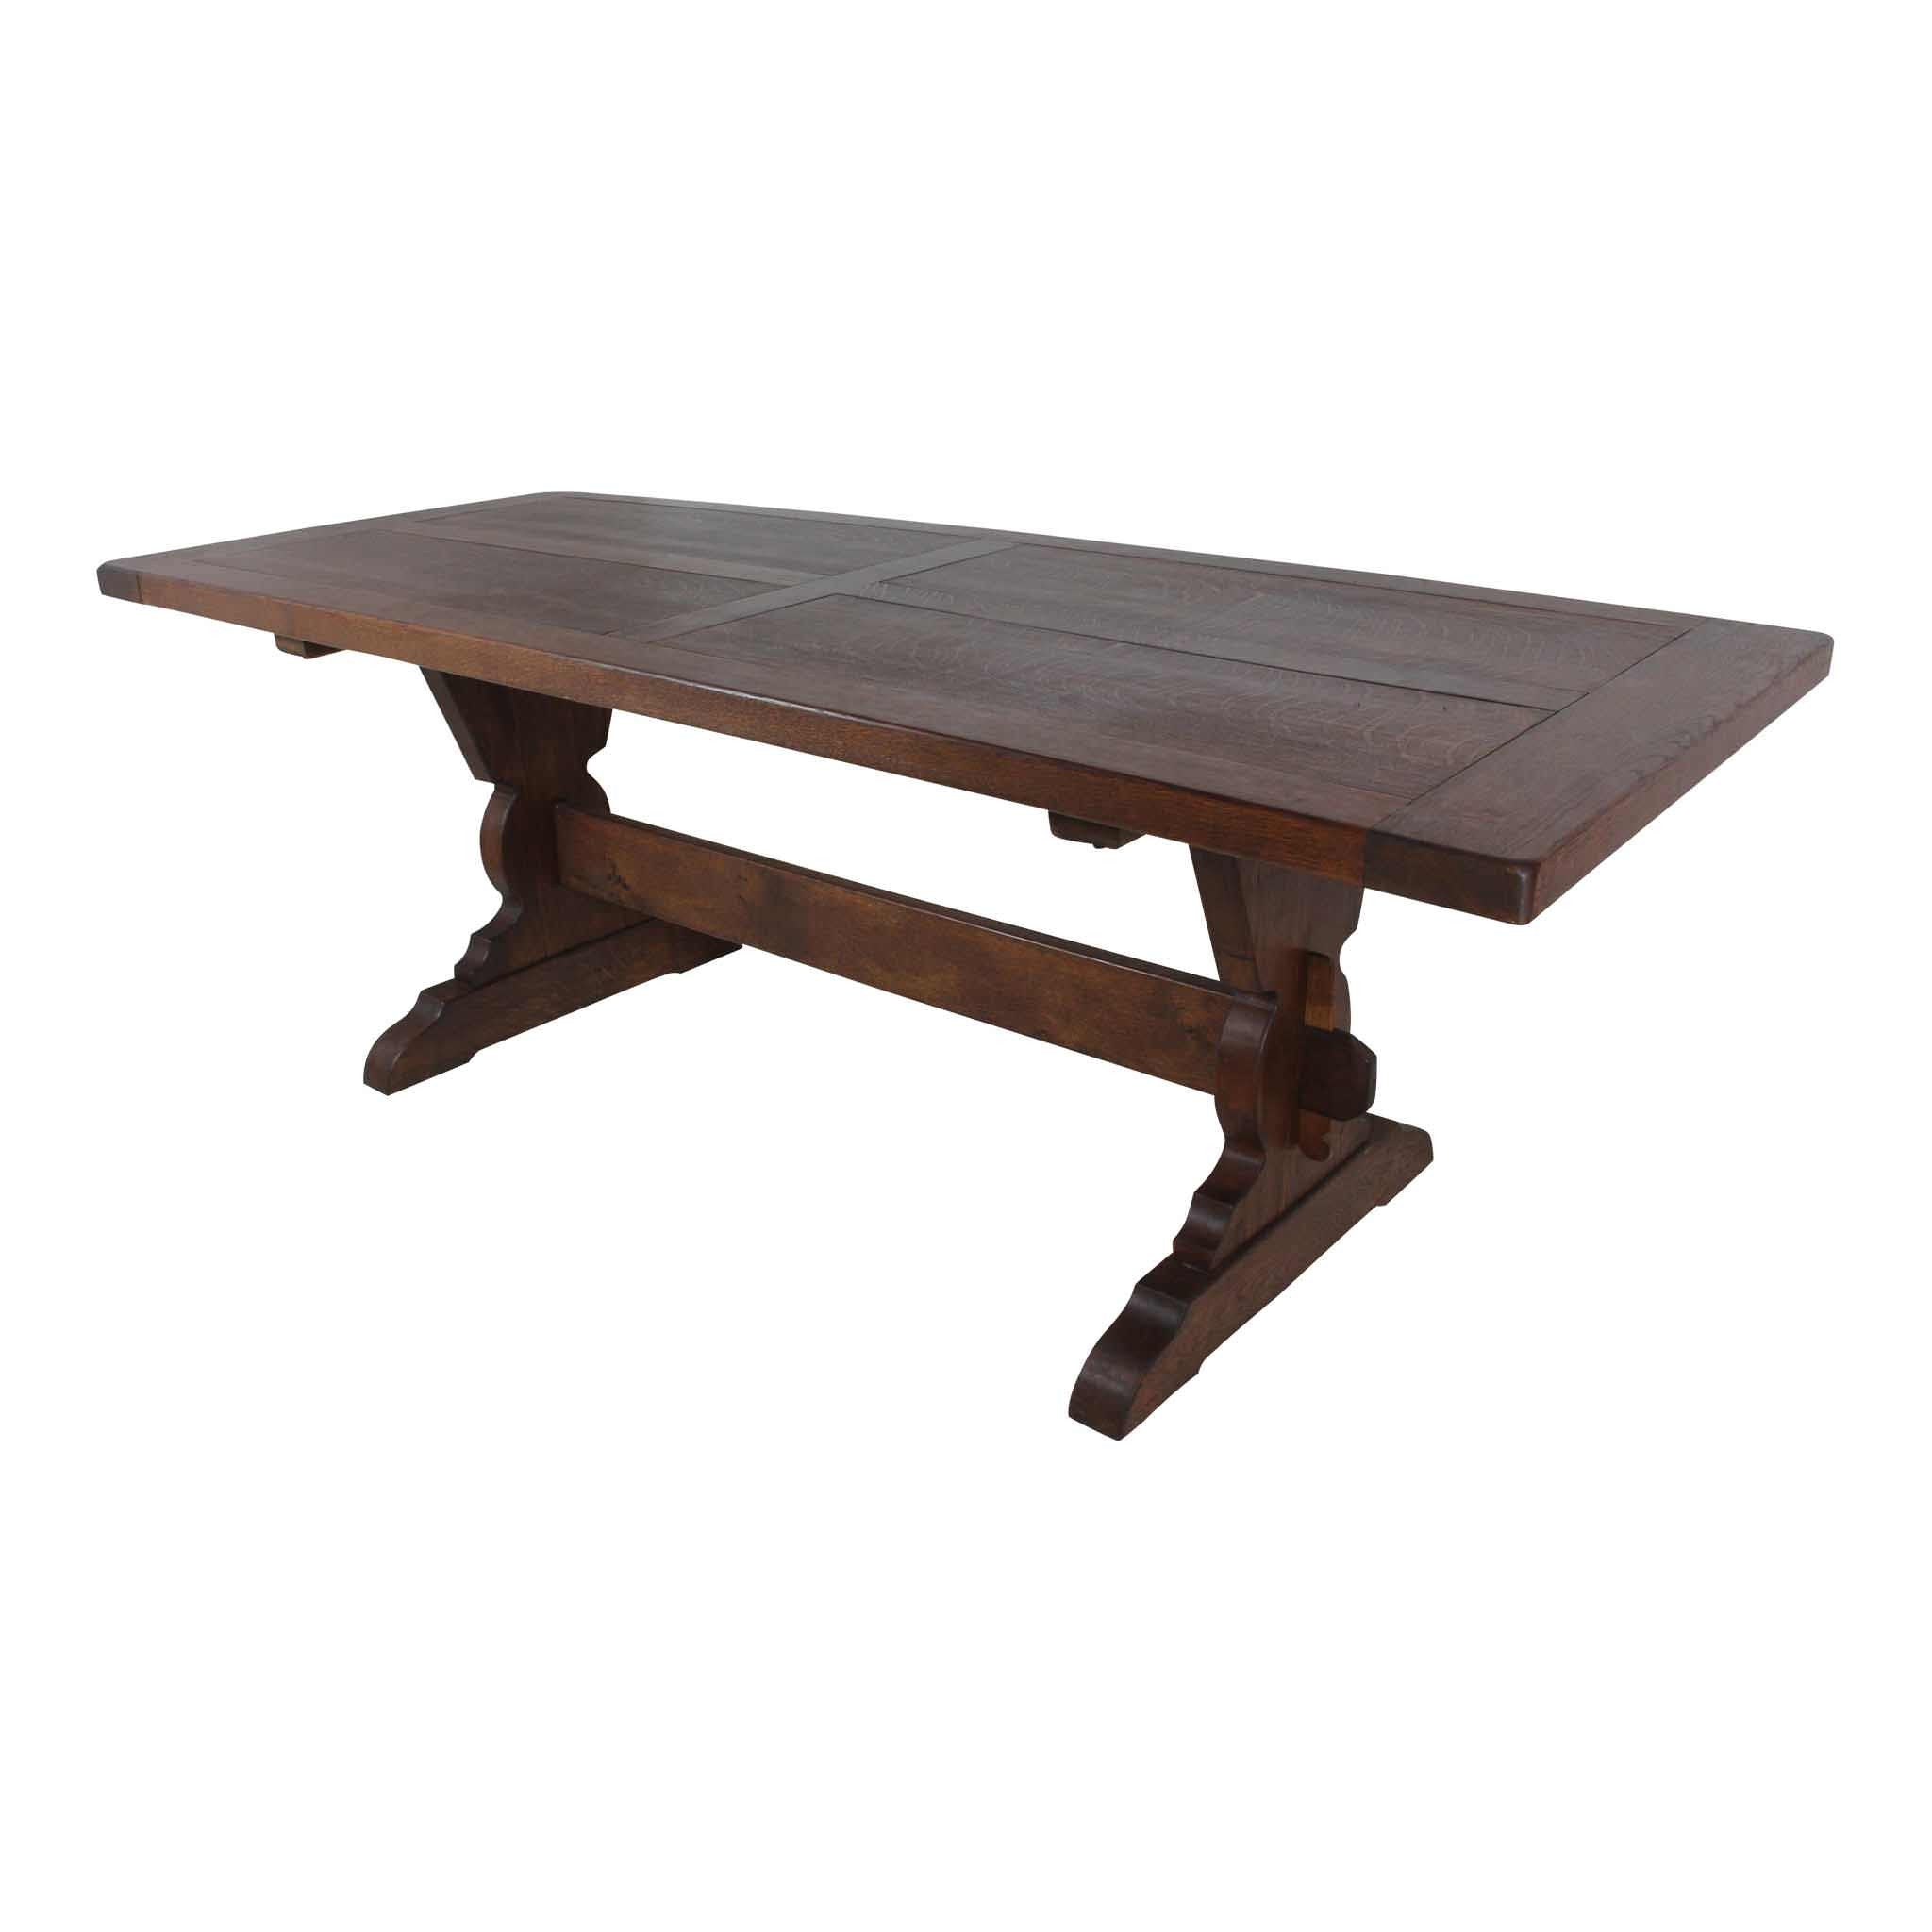 Belgian Trestle Table